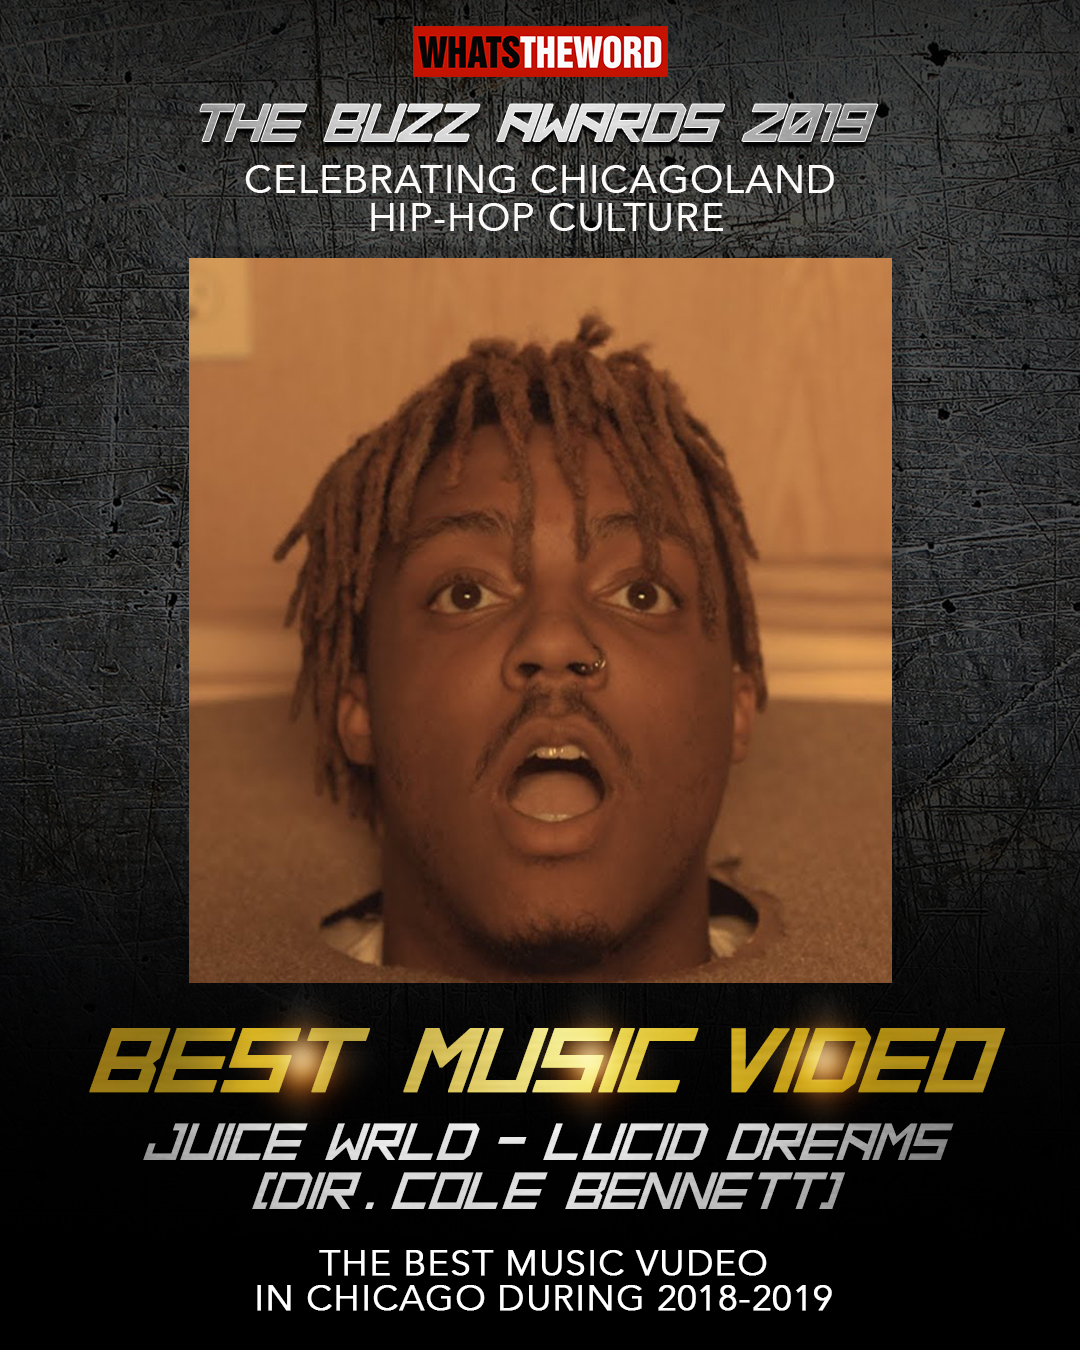 Best Music Video_The Buzz Awards 2019.jpg